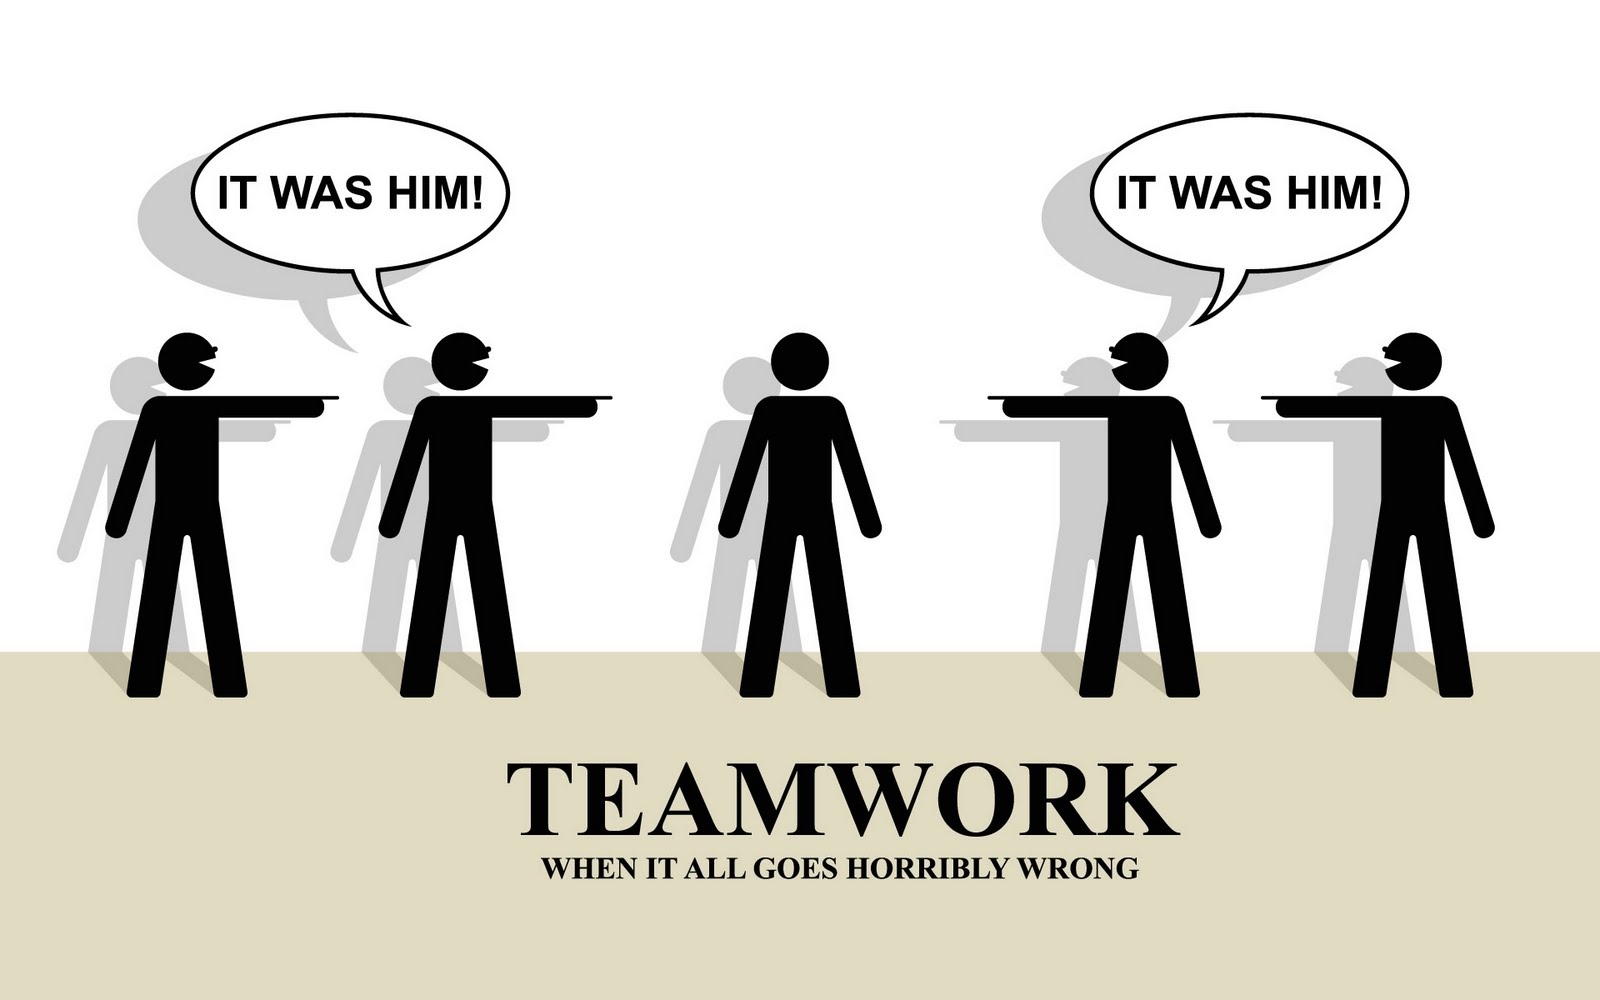 Funny Office Illustrations For Team Work Wallpaper Hd Black